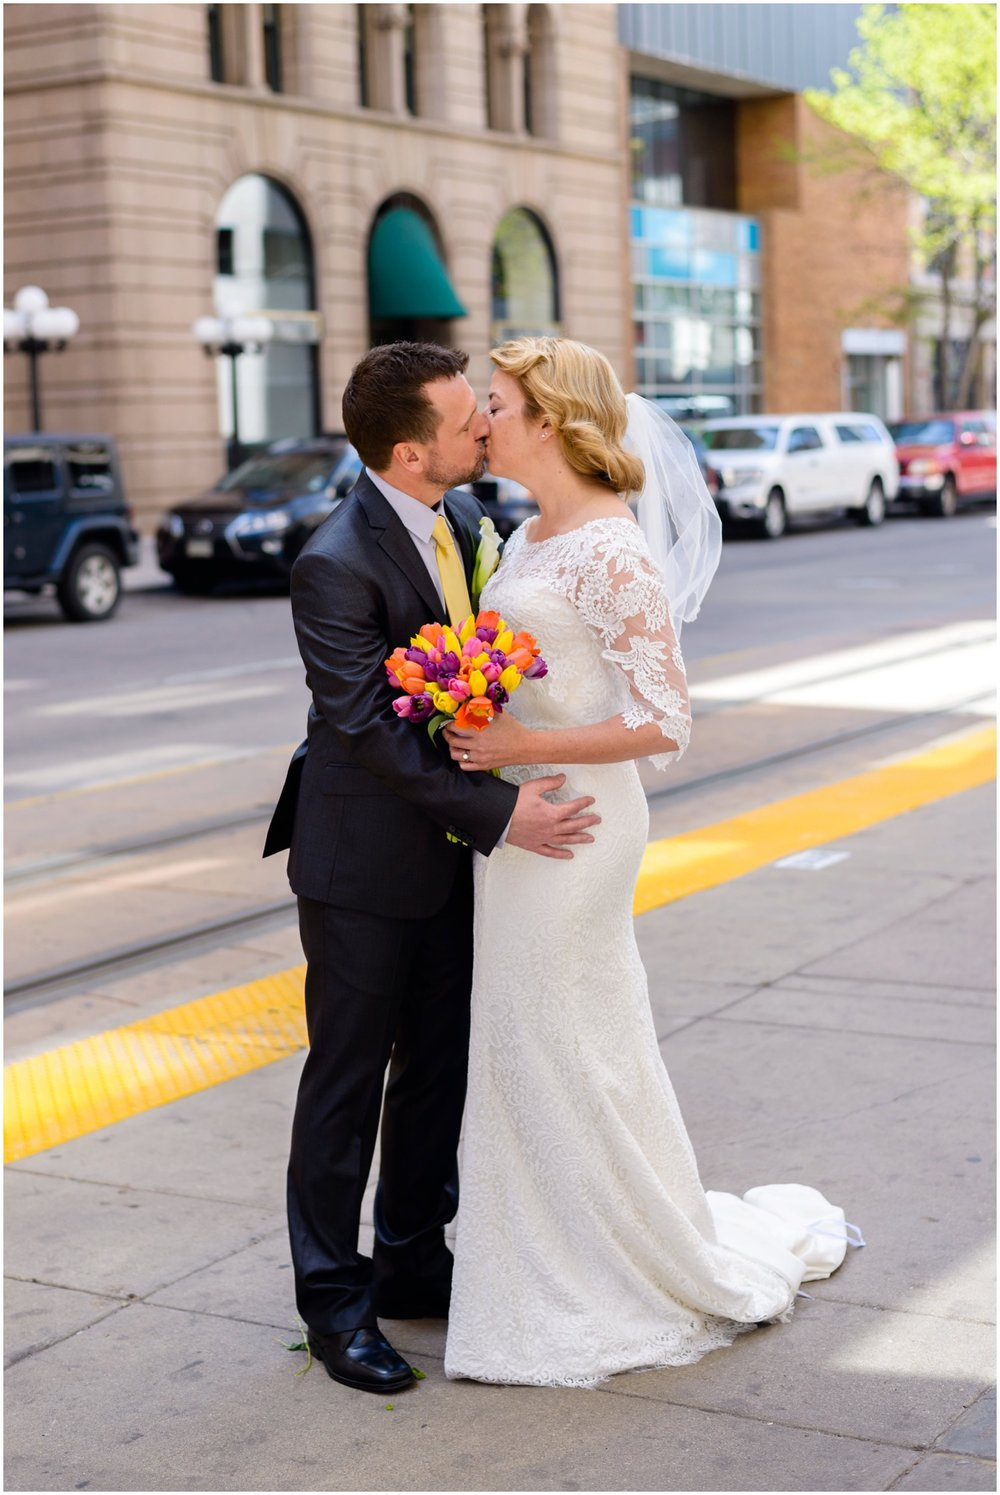 567-Downtown-Denver-wedding-photography.jpg